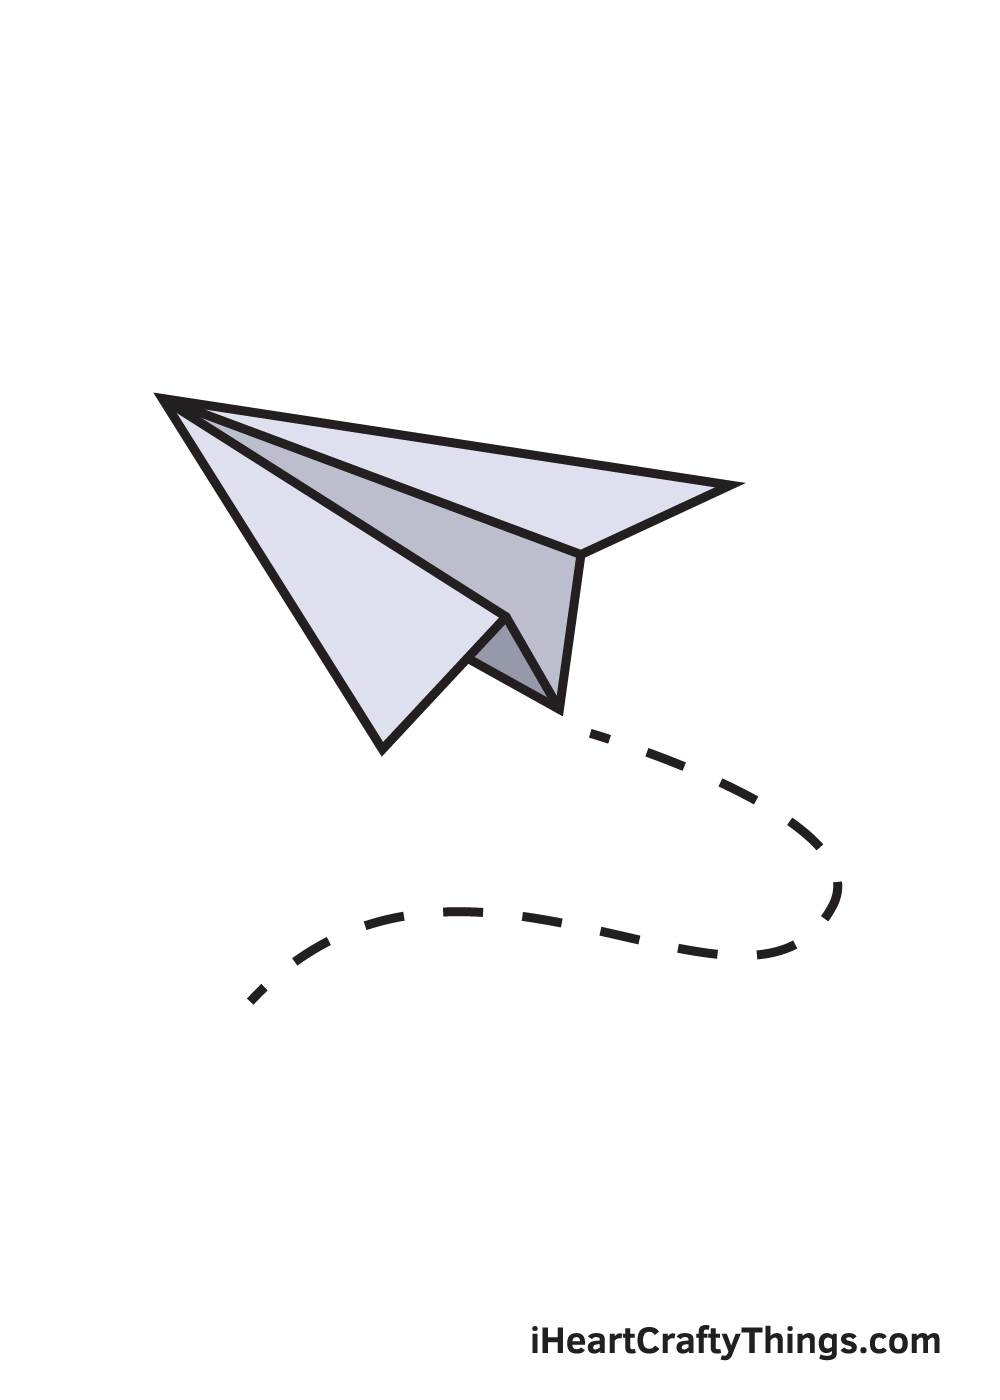 paper airplane drawing 9 steps